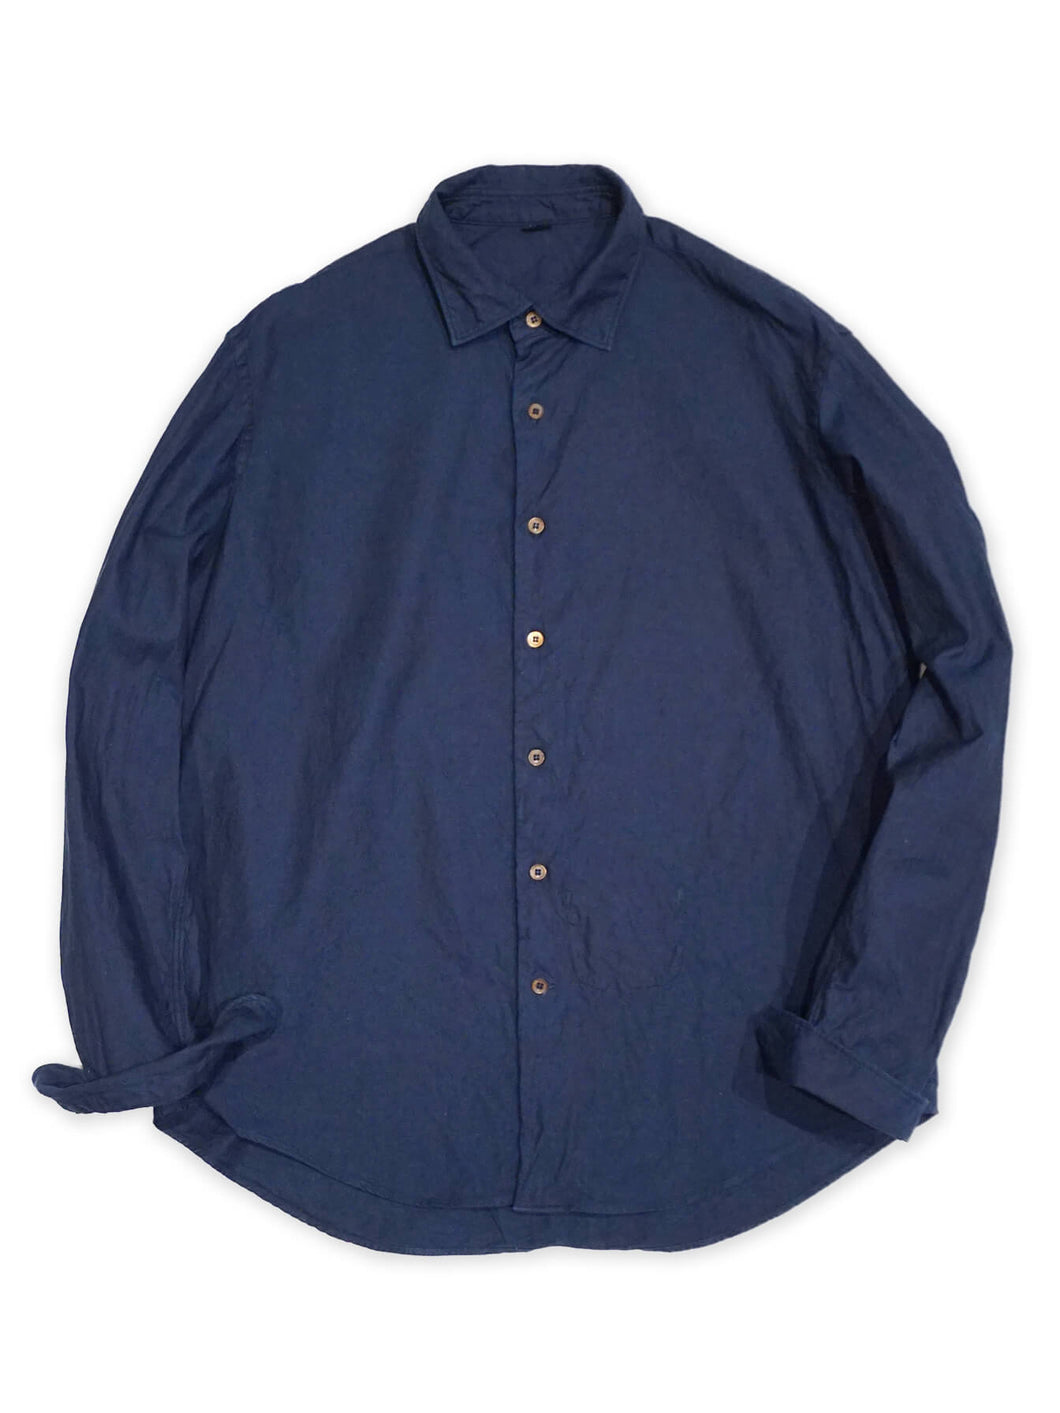 Indigo Zimba Oxford Coin Pocket Shirt in Indigo